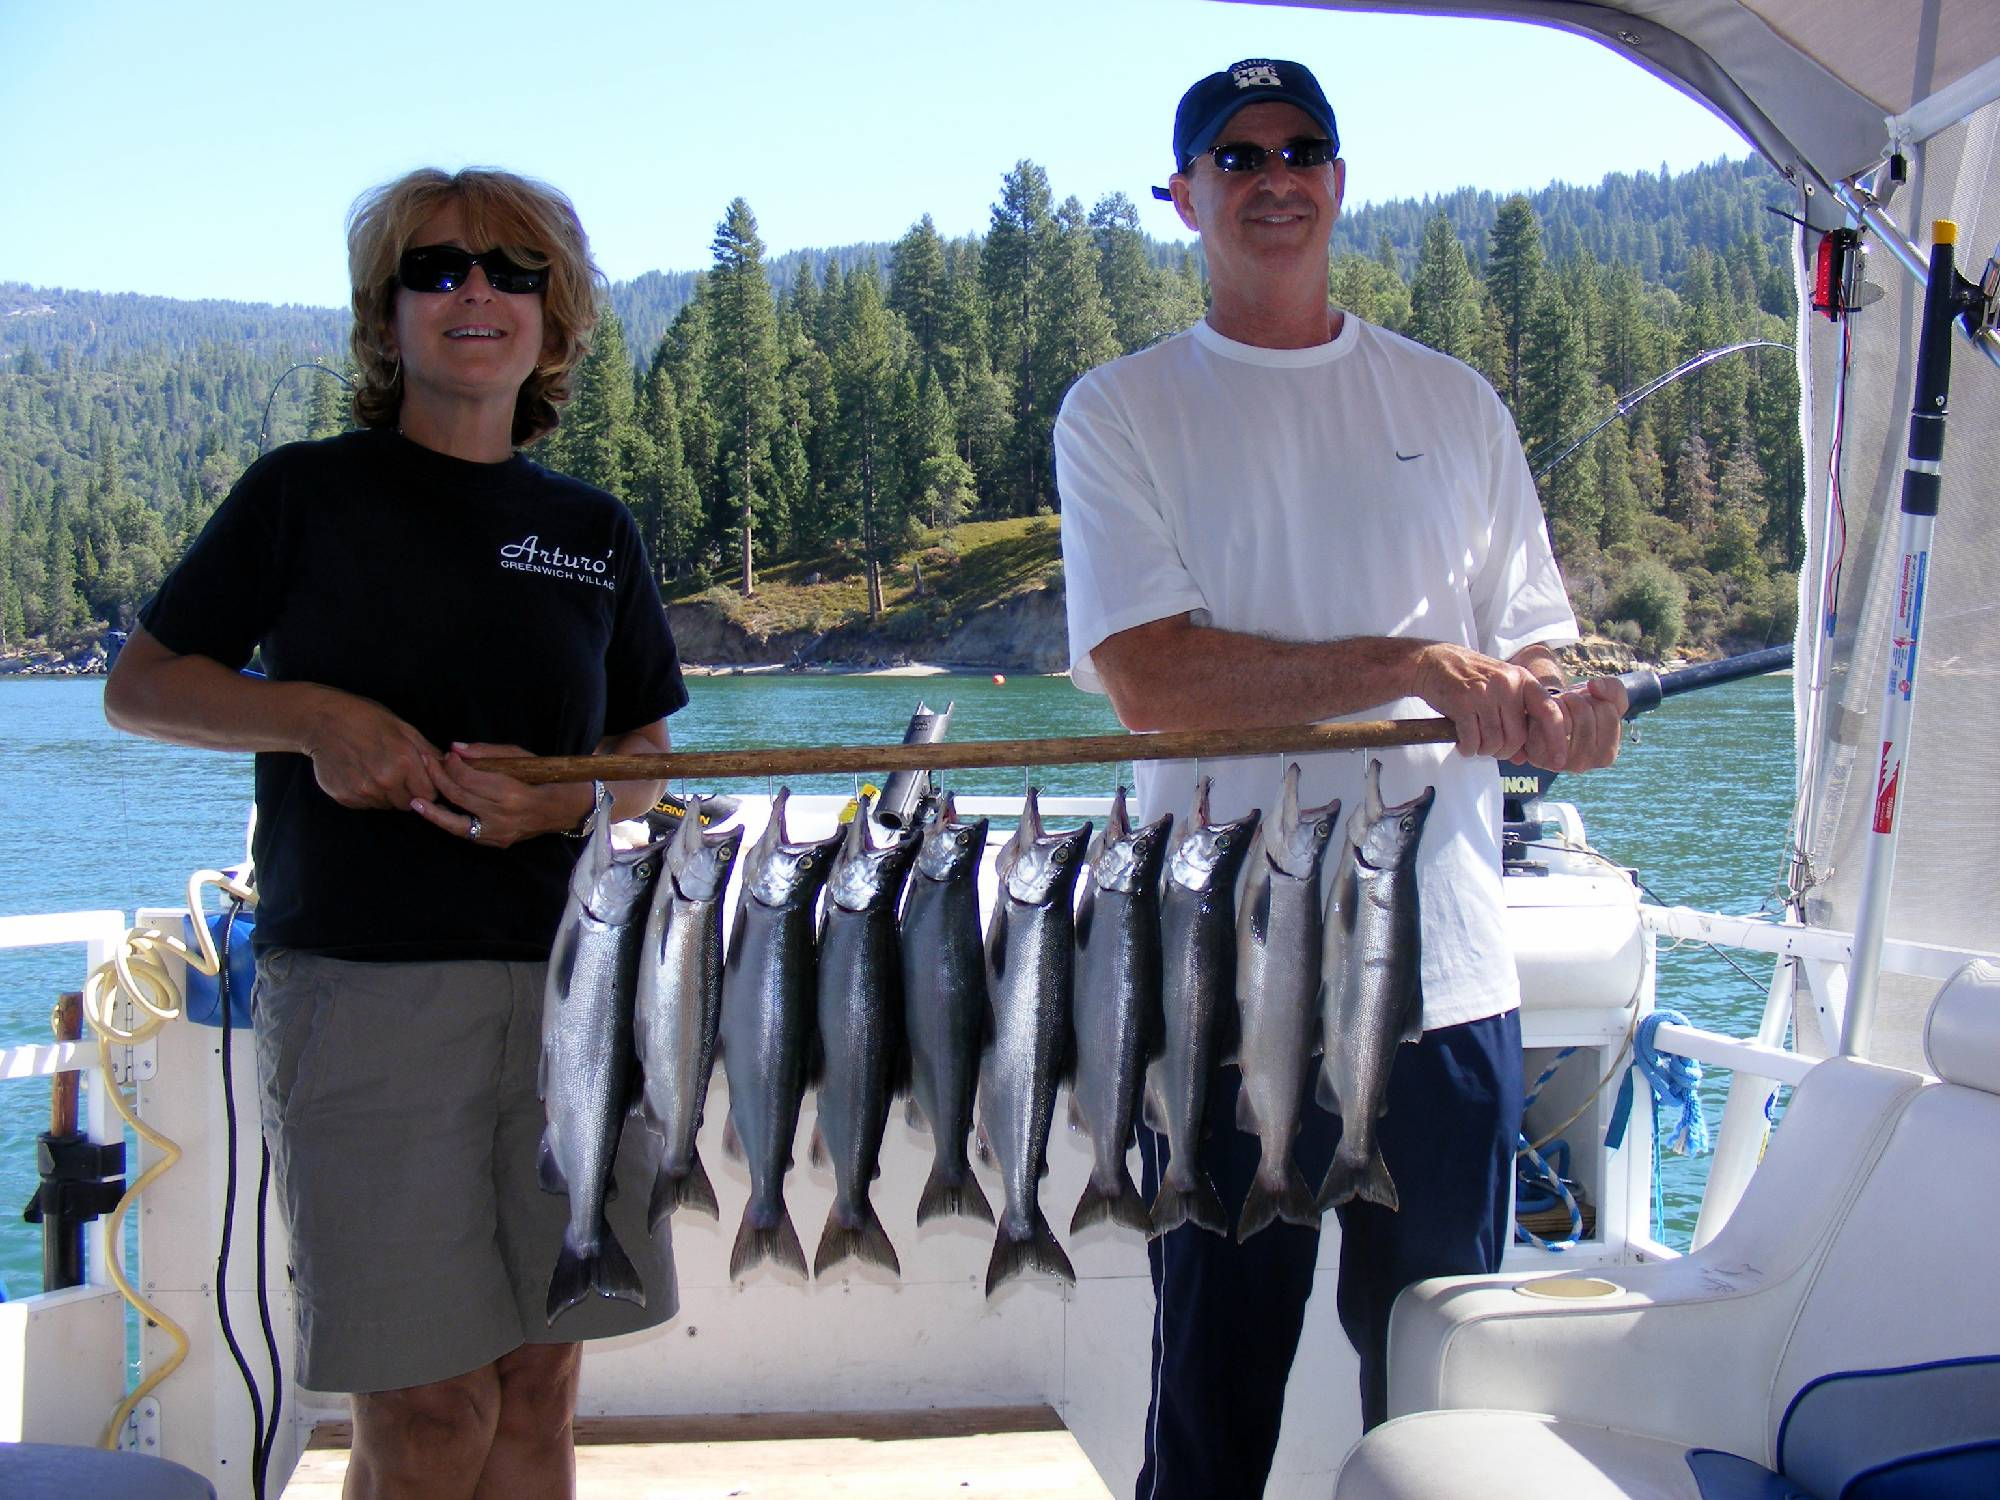 Shaver Lake Amp Bass Lake Fishing Guide Service Kokanee